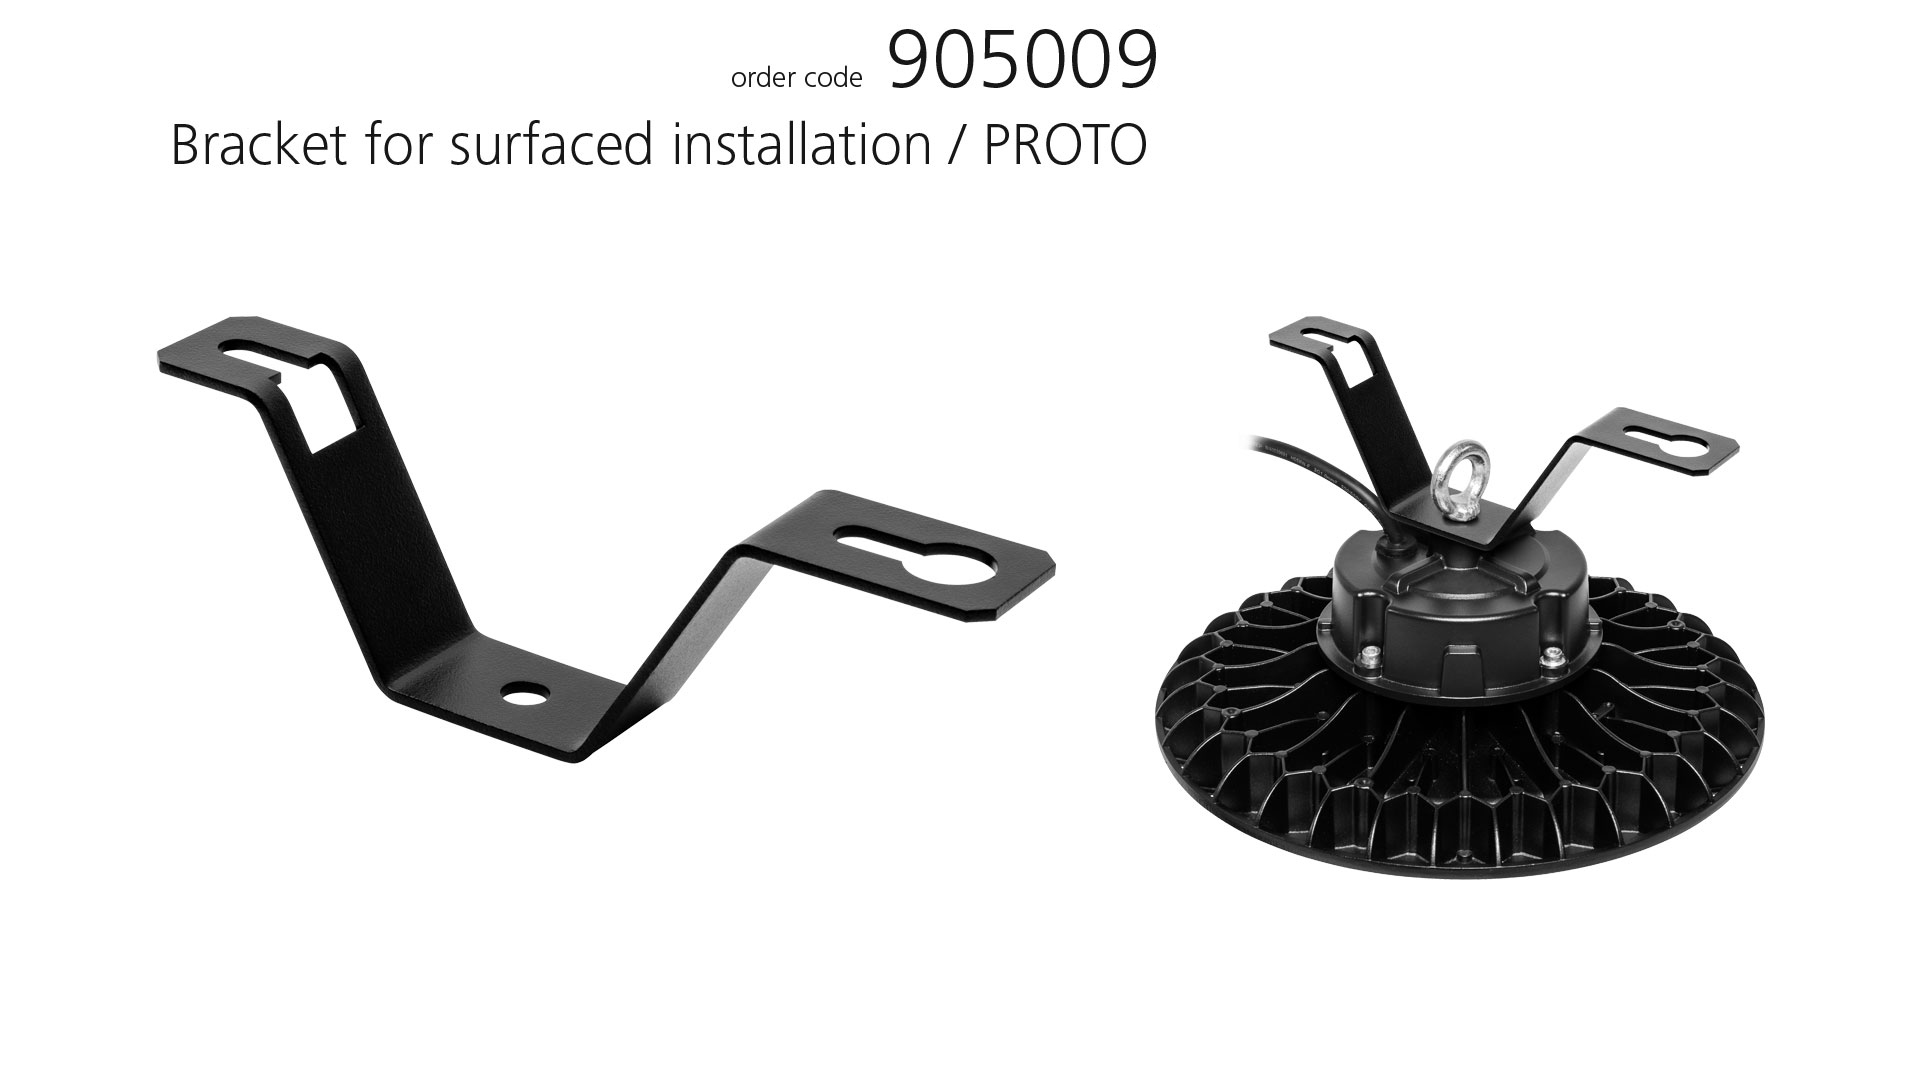 Accessories Bracket for surfaced installation